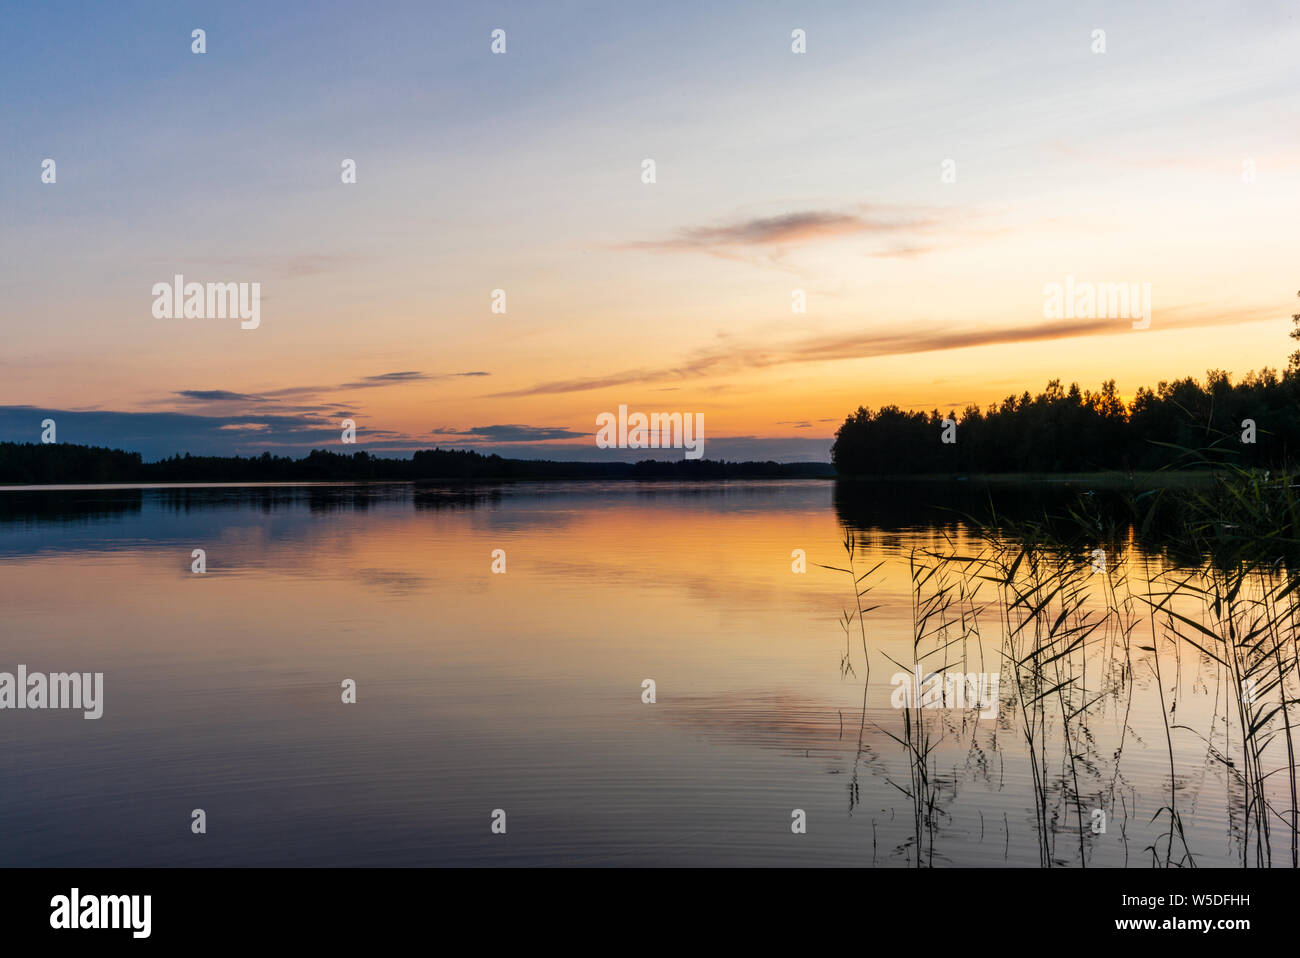 Reflections on the calm waters of the Saimaa lake in Finland at Sunset  - 2 Stock Photo